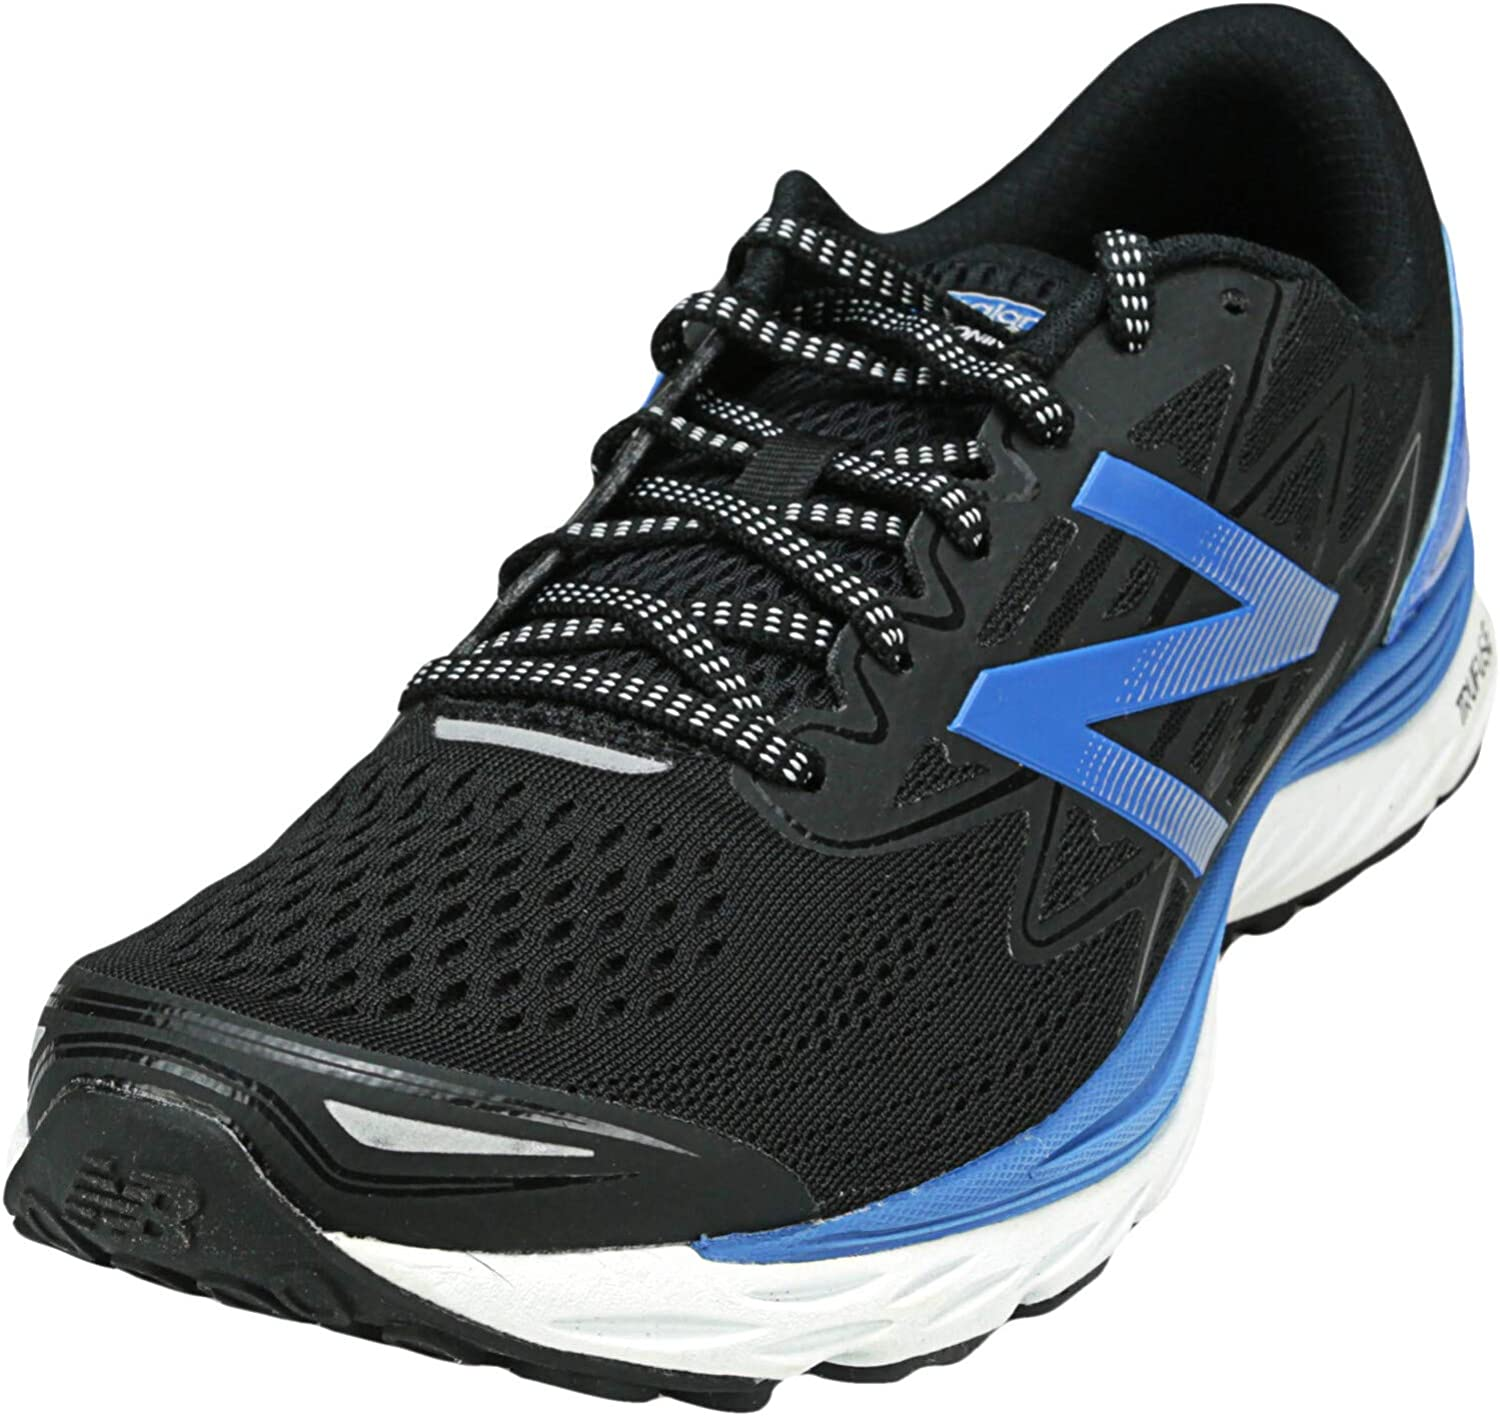 New Balance Solvi Neutral, Zapatillas de Running para Hombre: Amazon.es: Zapatos y complementos